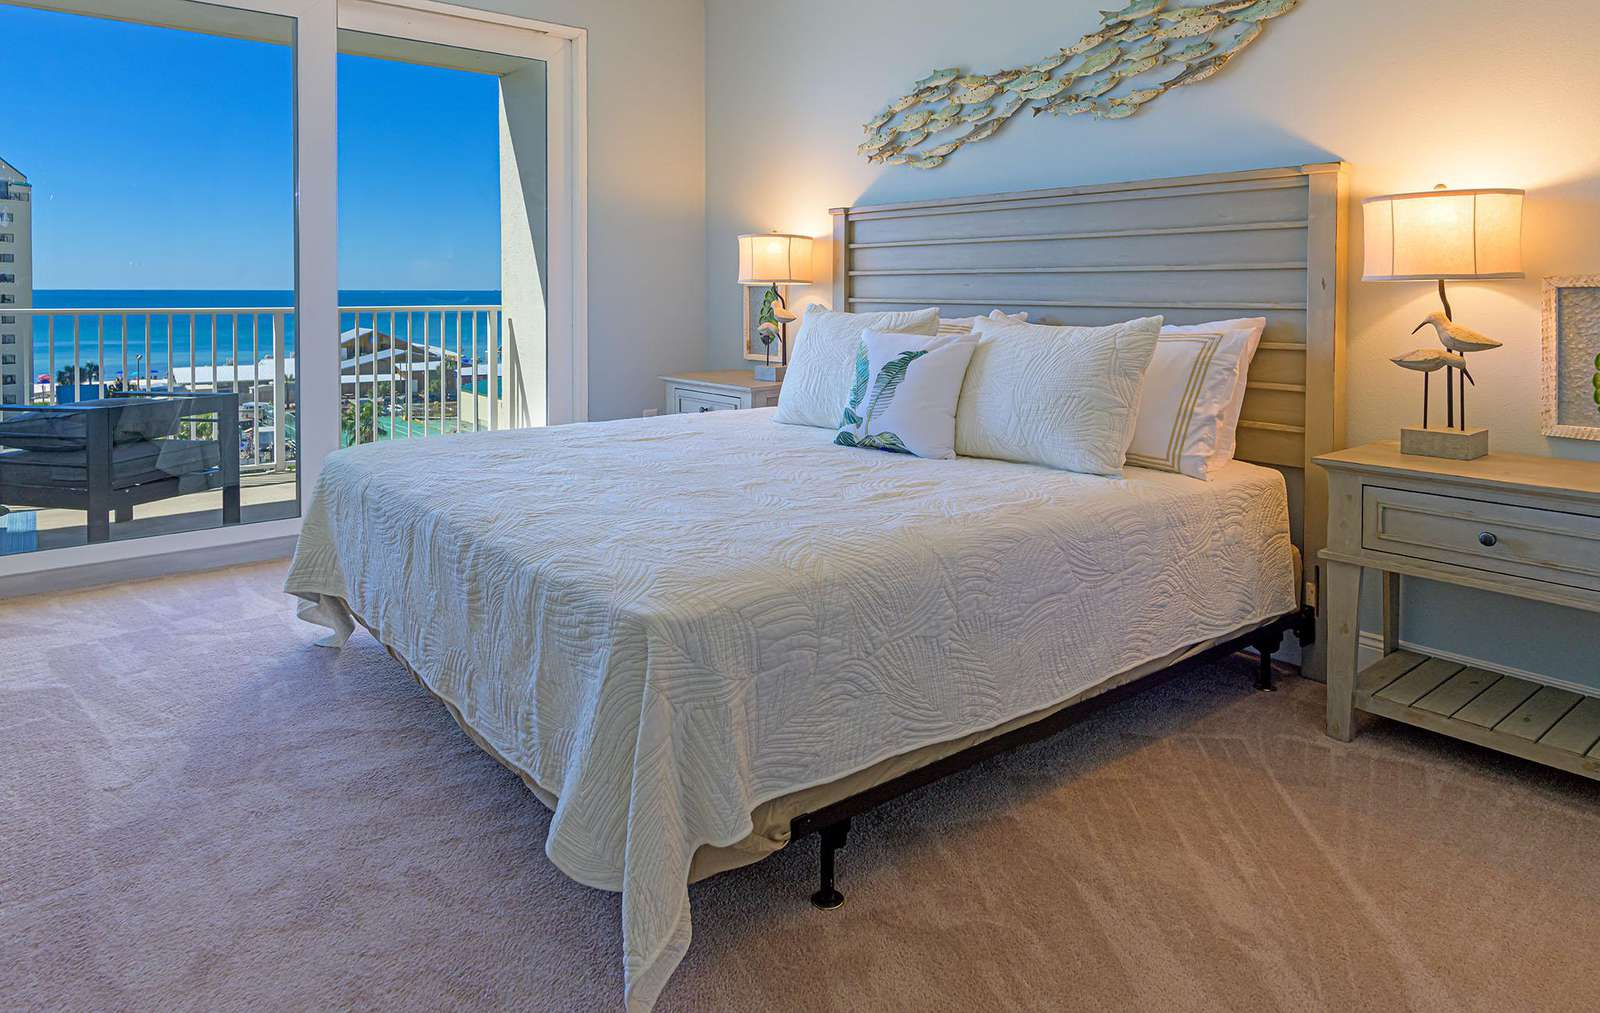 The master bedroom offers great views and balcony access!